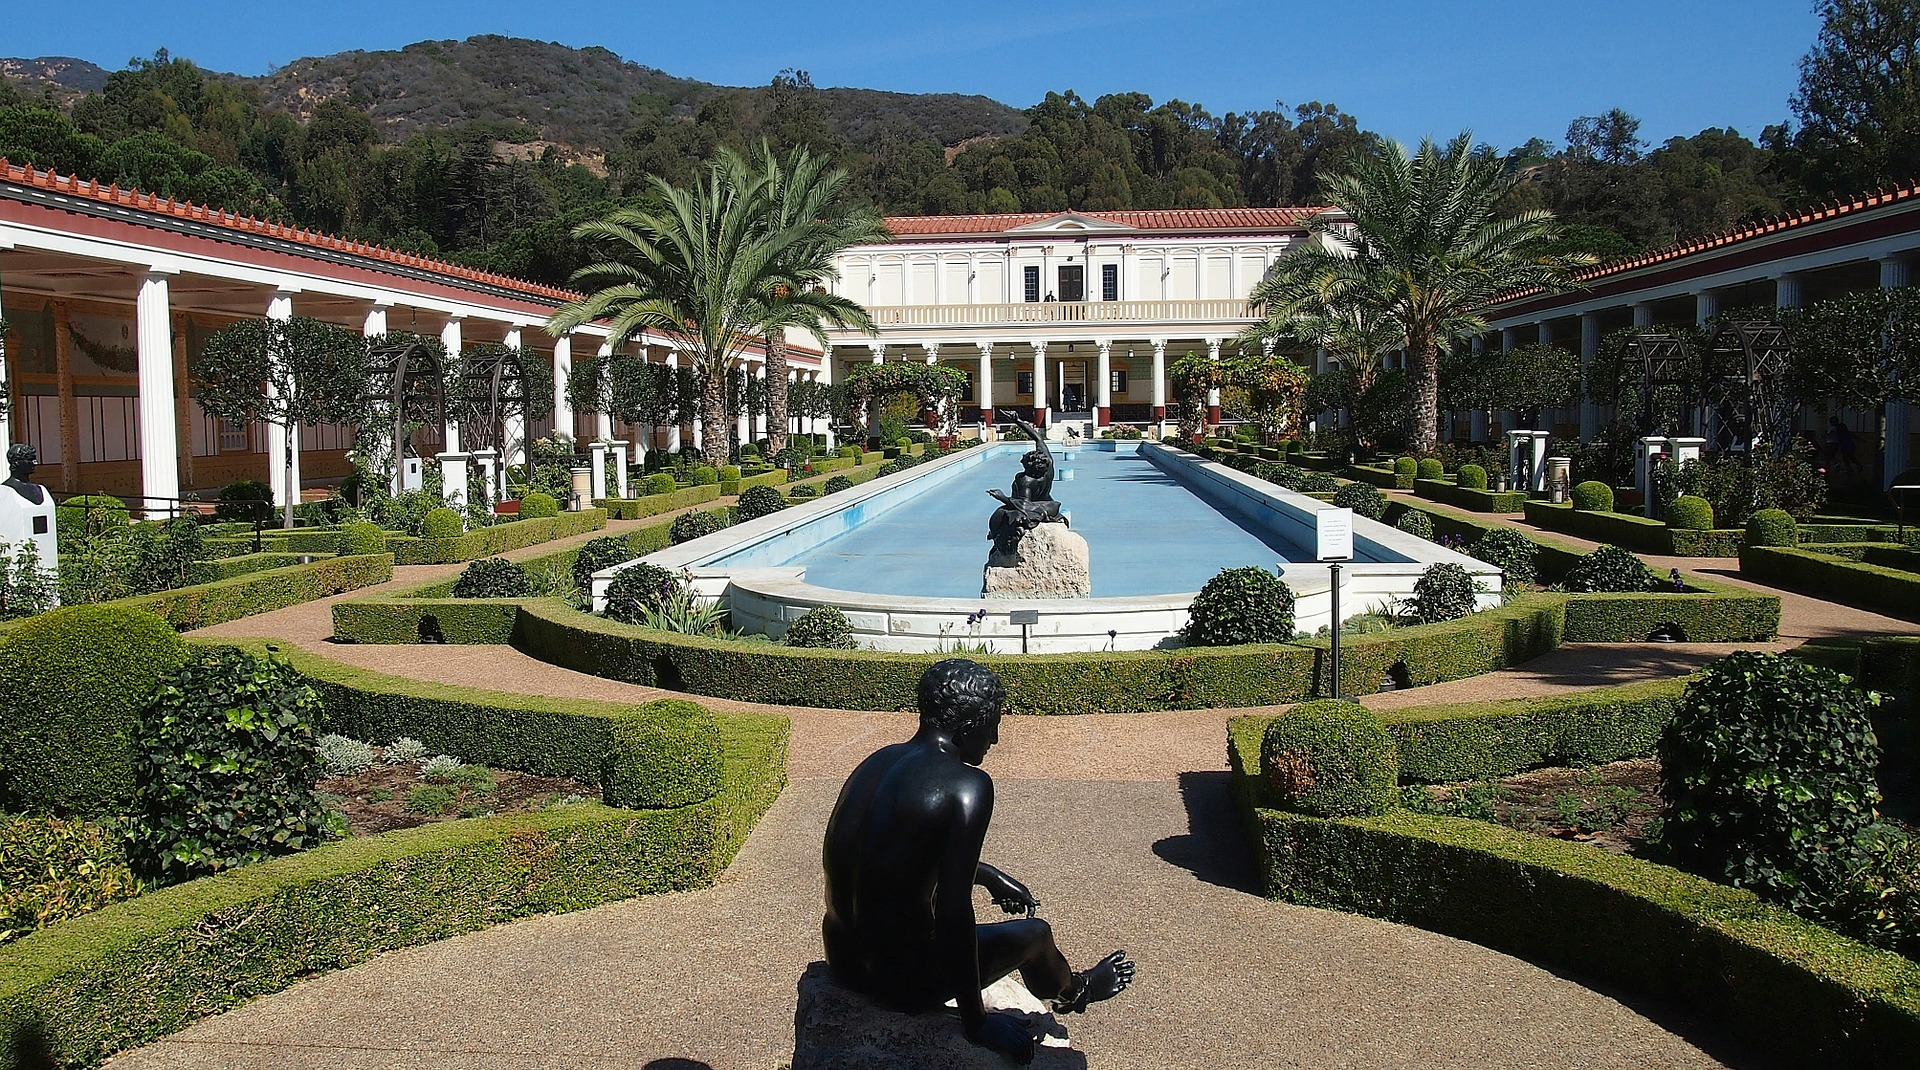 Long pool with statues at Getty Villa